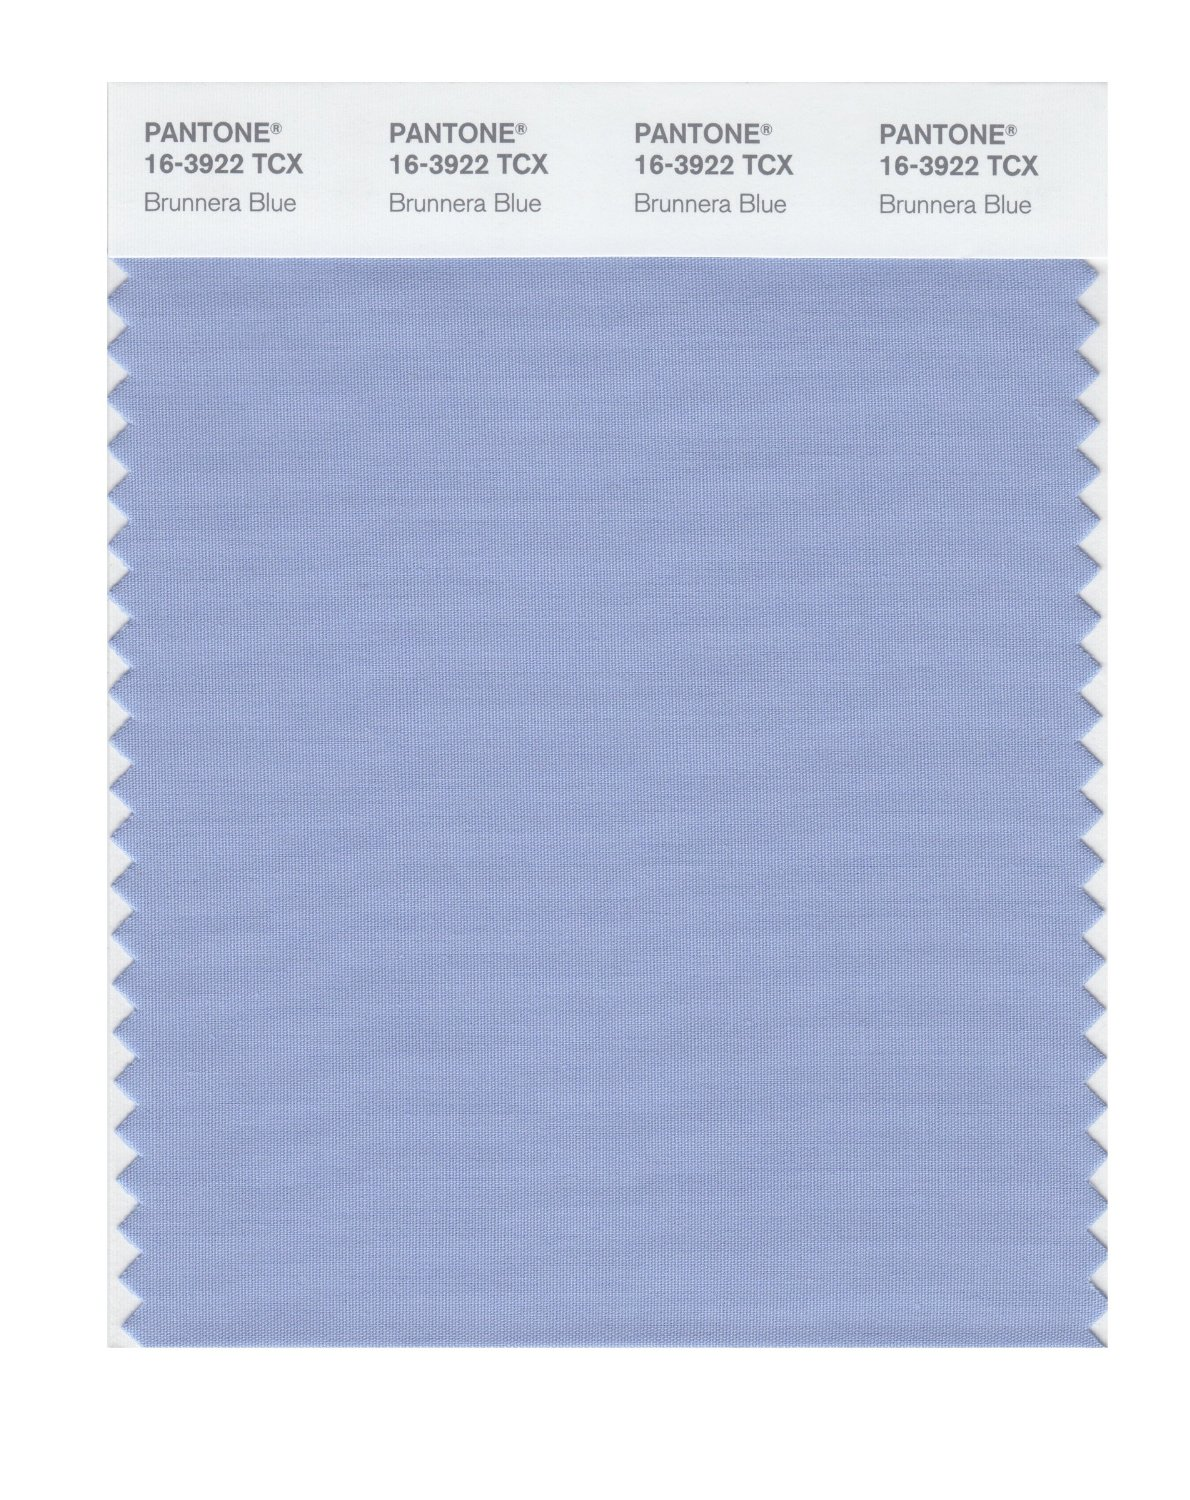 Pantone Smart Swatch 16-3922 Brunnera Blue